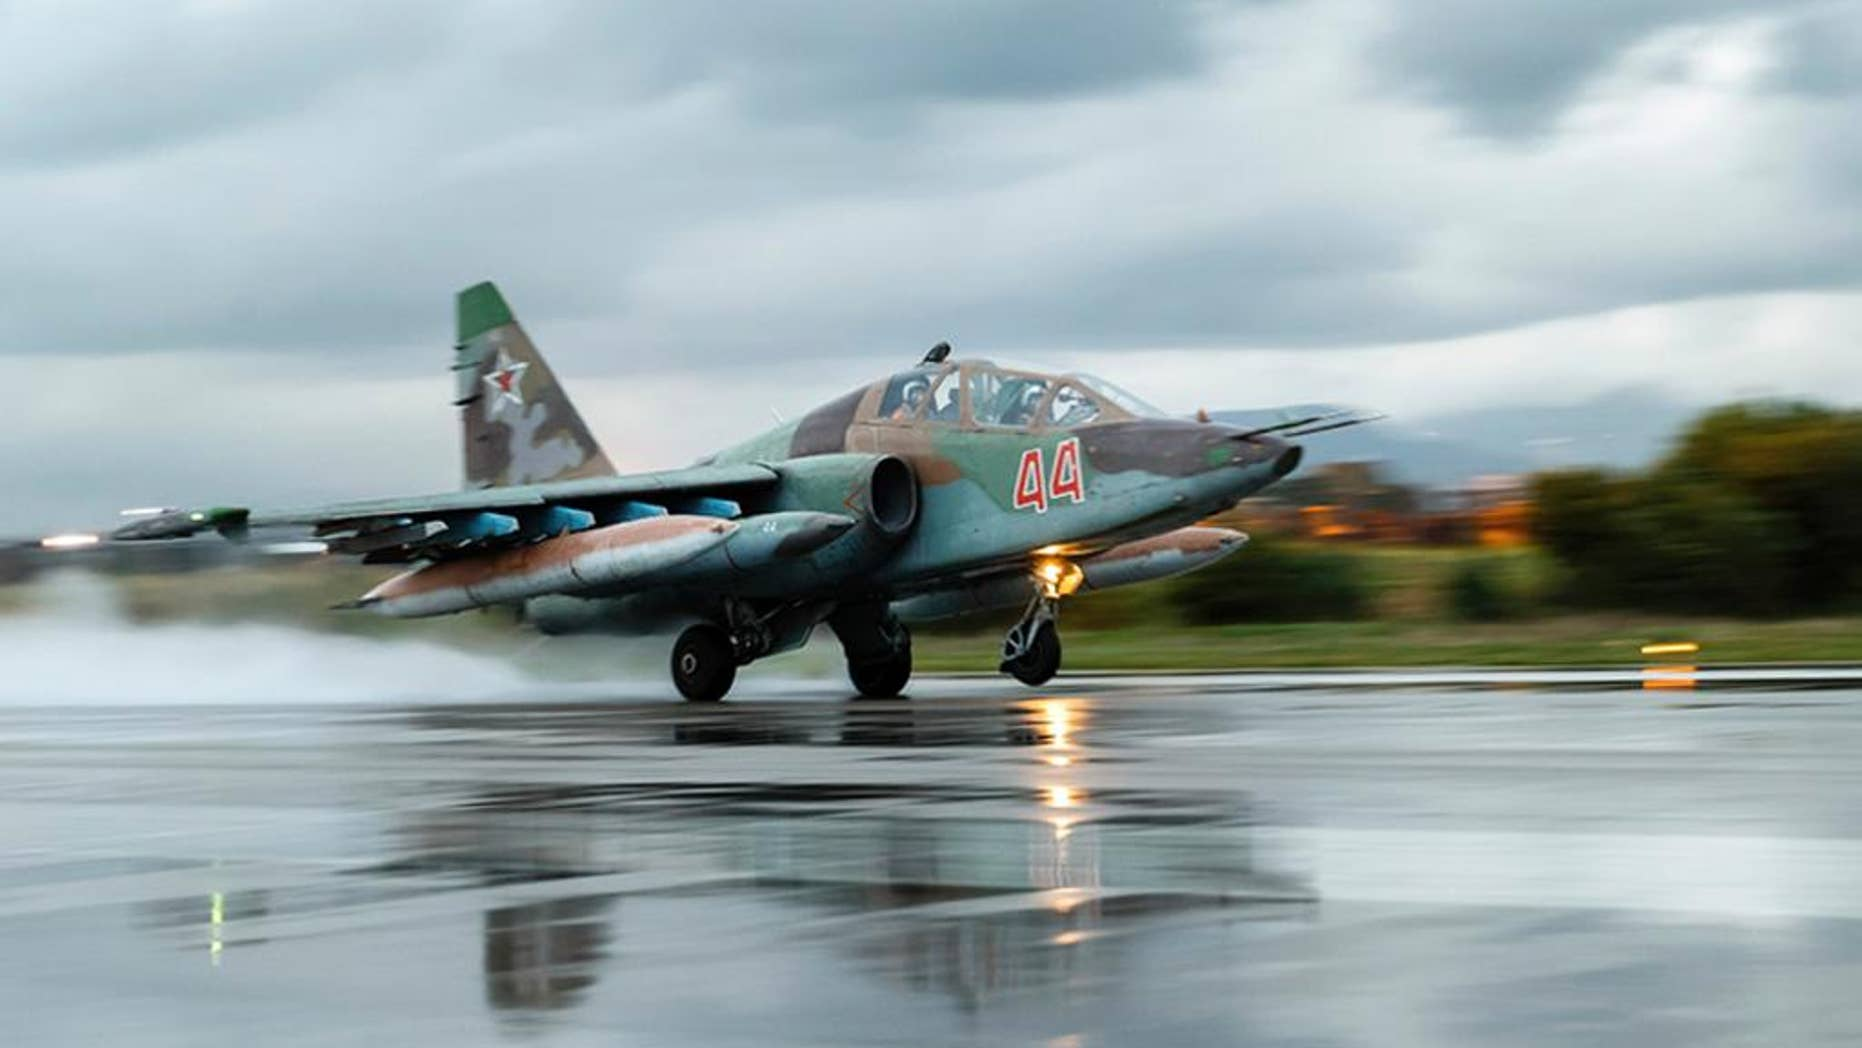 March 16, 2016: A Russian Su-25 ground attack jet takes off at Hemeimeem Air Base in Syria.